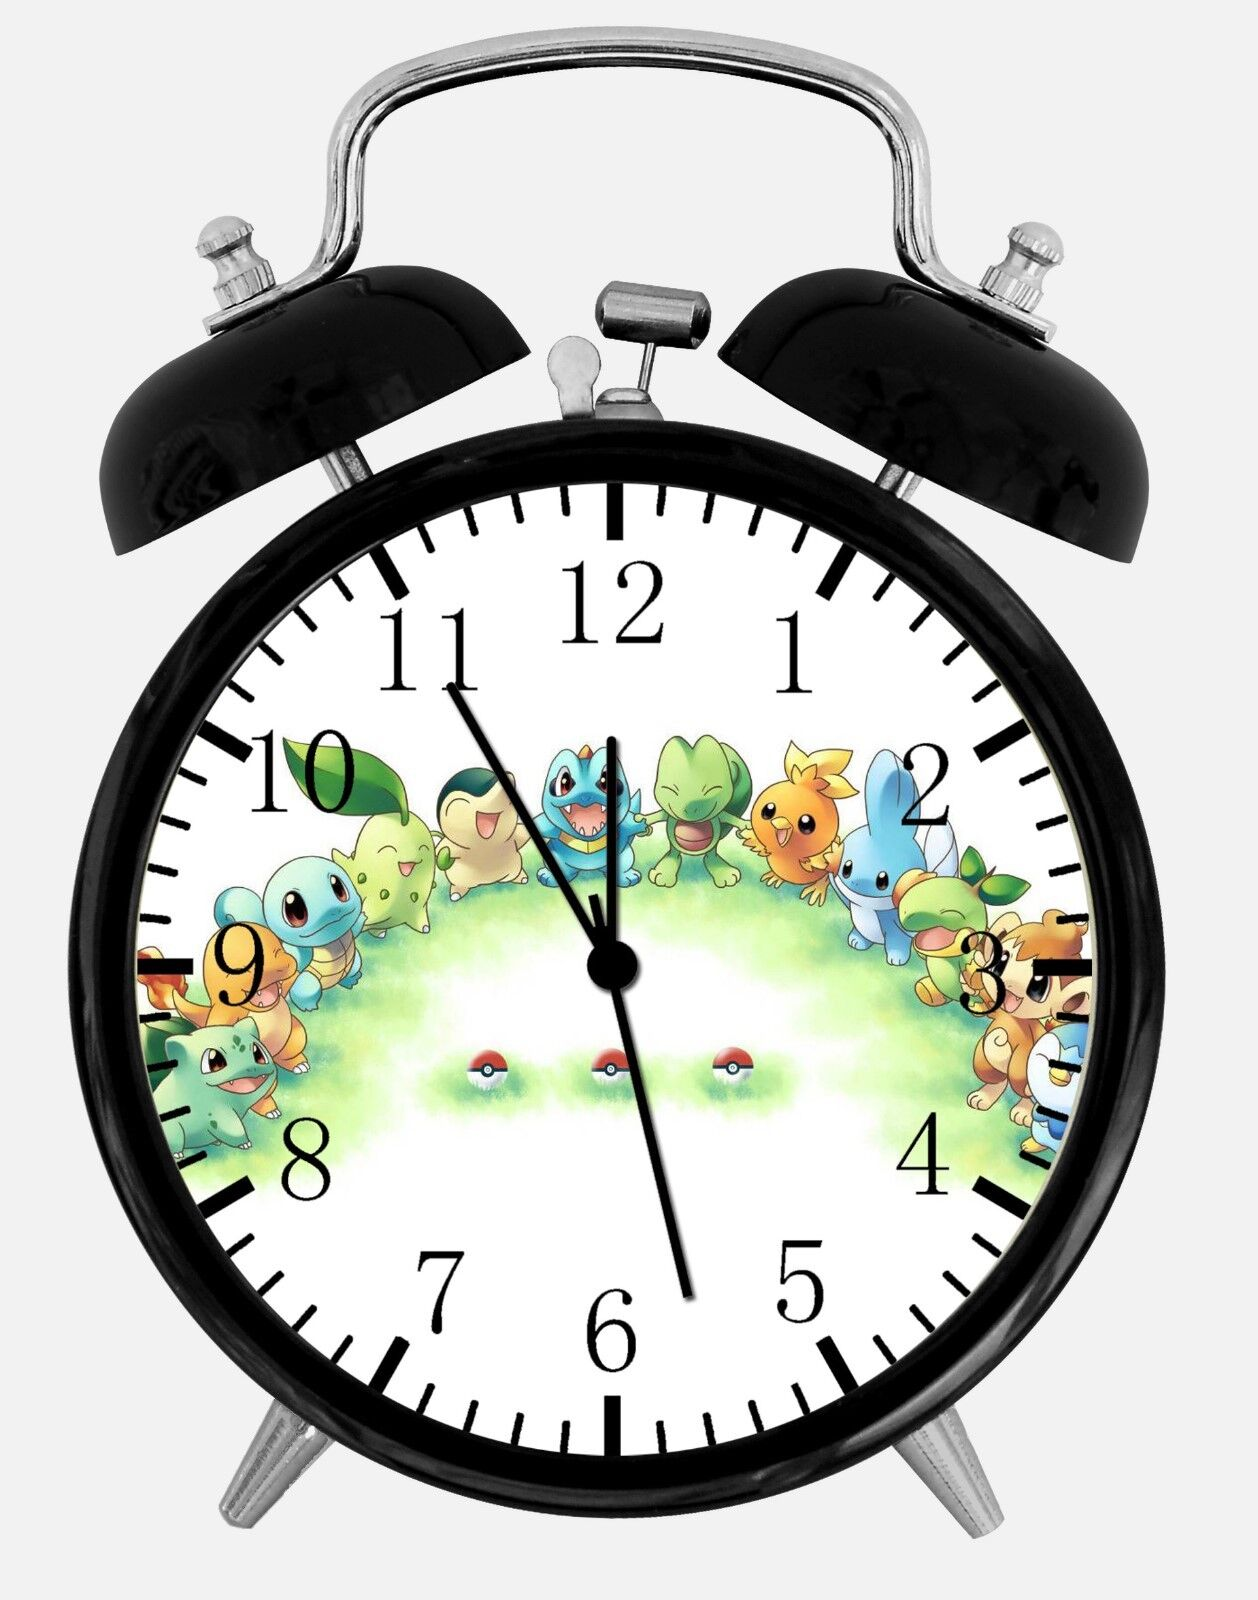 "Cute Pokemon Alarm Desk Clock 3.75"" Home or Office Decor F05 Nice For Gift"